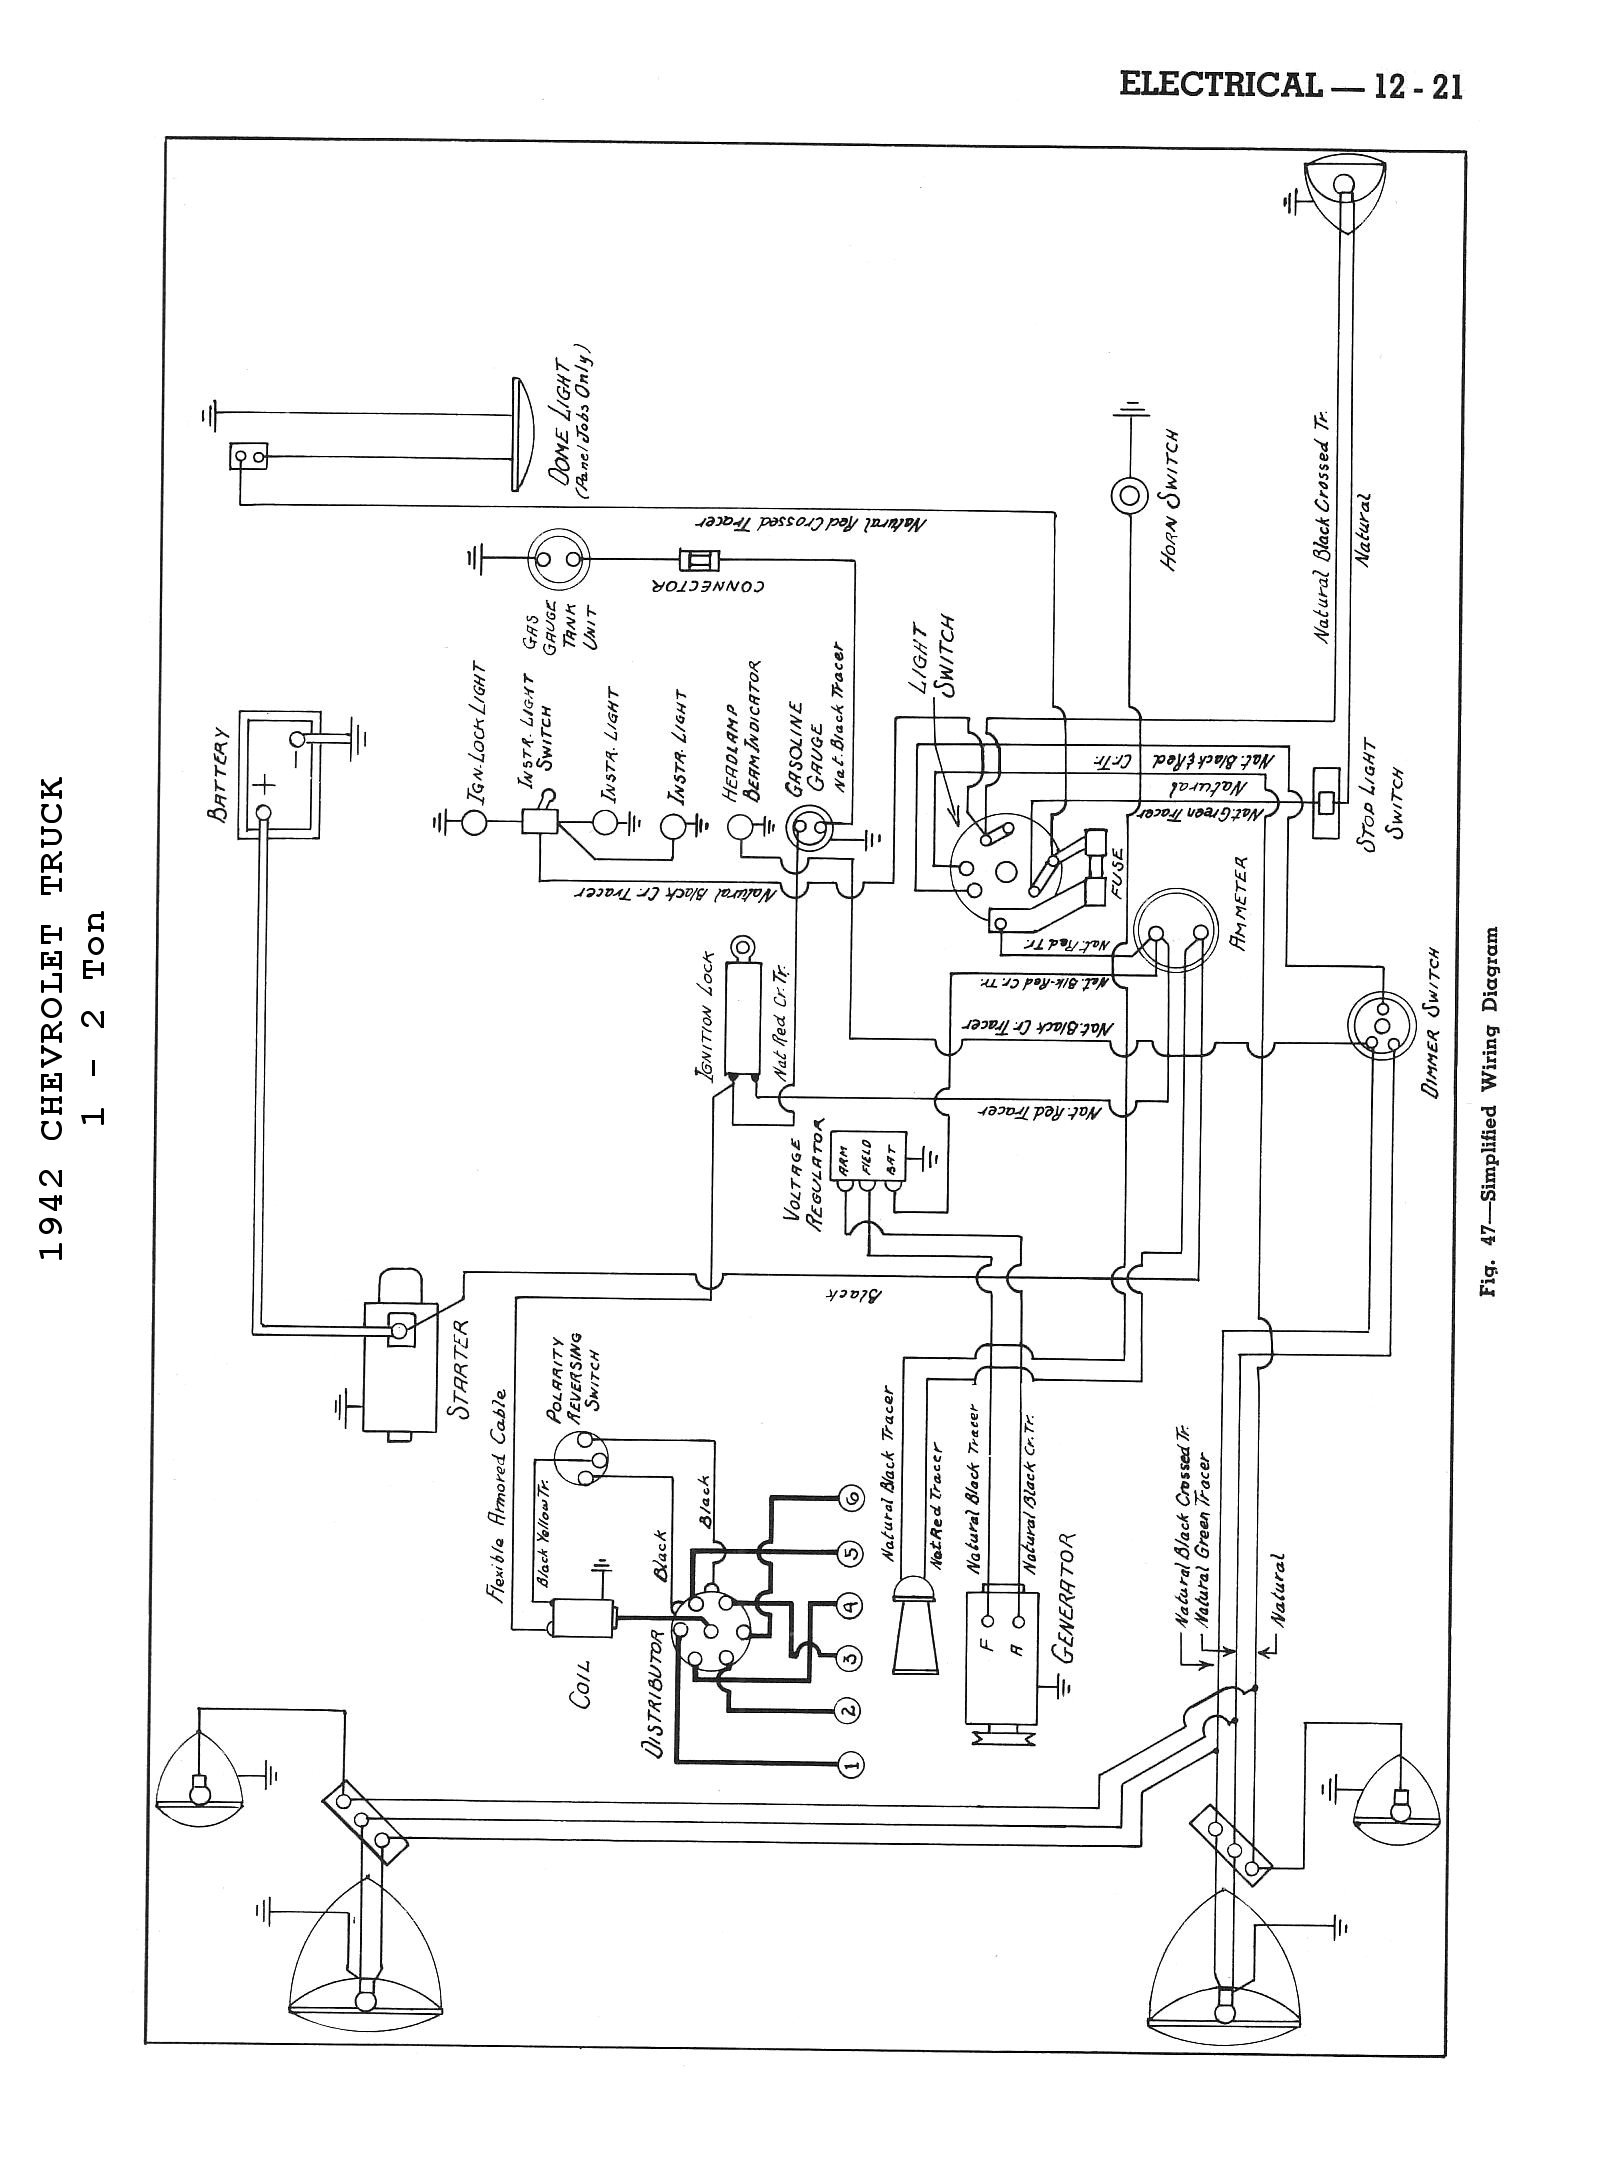 1957 Chevy Truck Wiring Harness Archive Of Automotive Diagram Ford 1941 Schematics Rh Thyl Co Uk